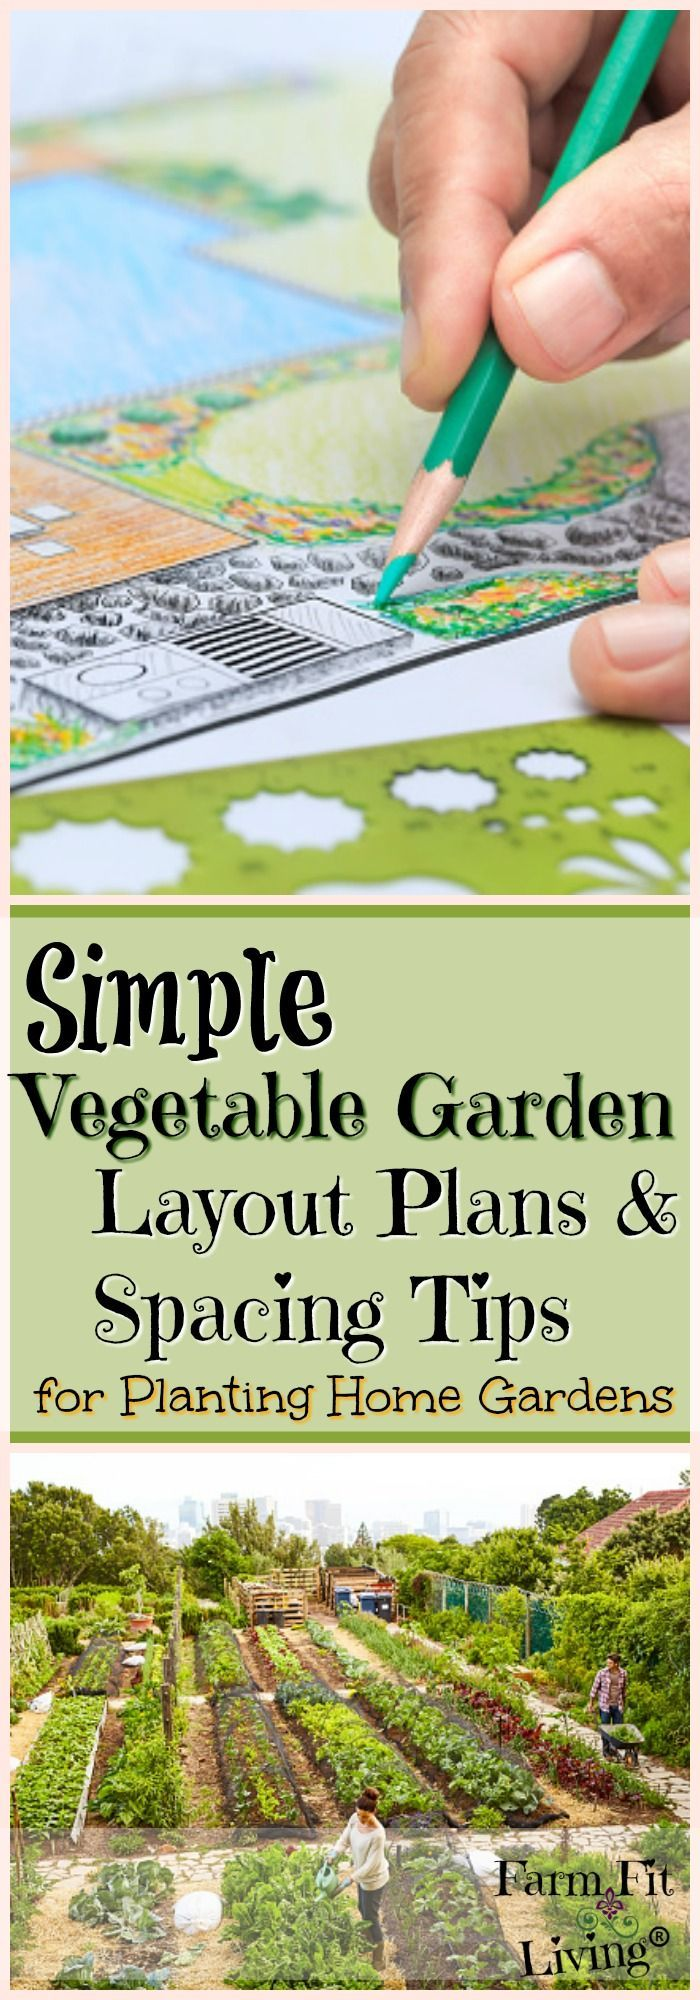 Simple Vegetable Garden Layout Plans And Spacing Tips For Home Gardens